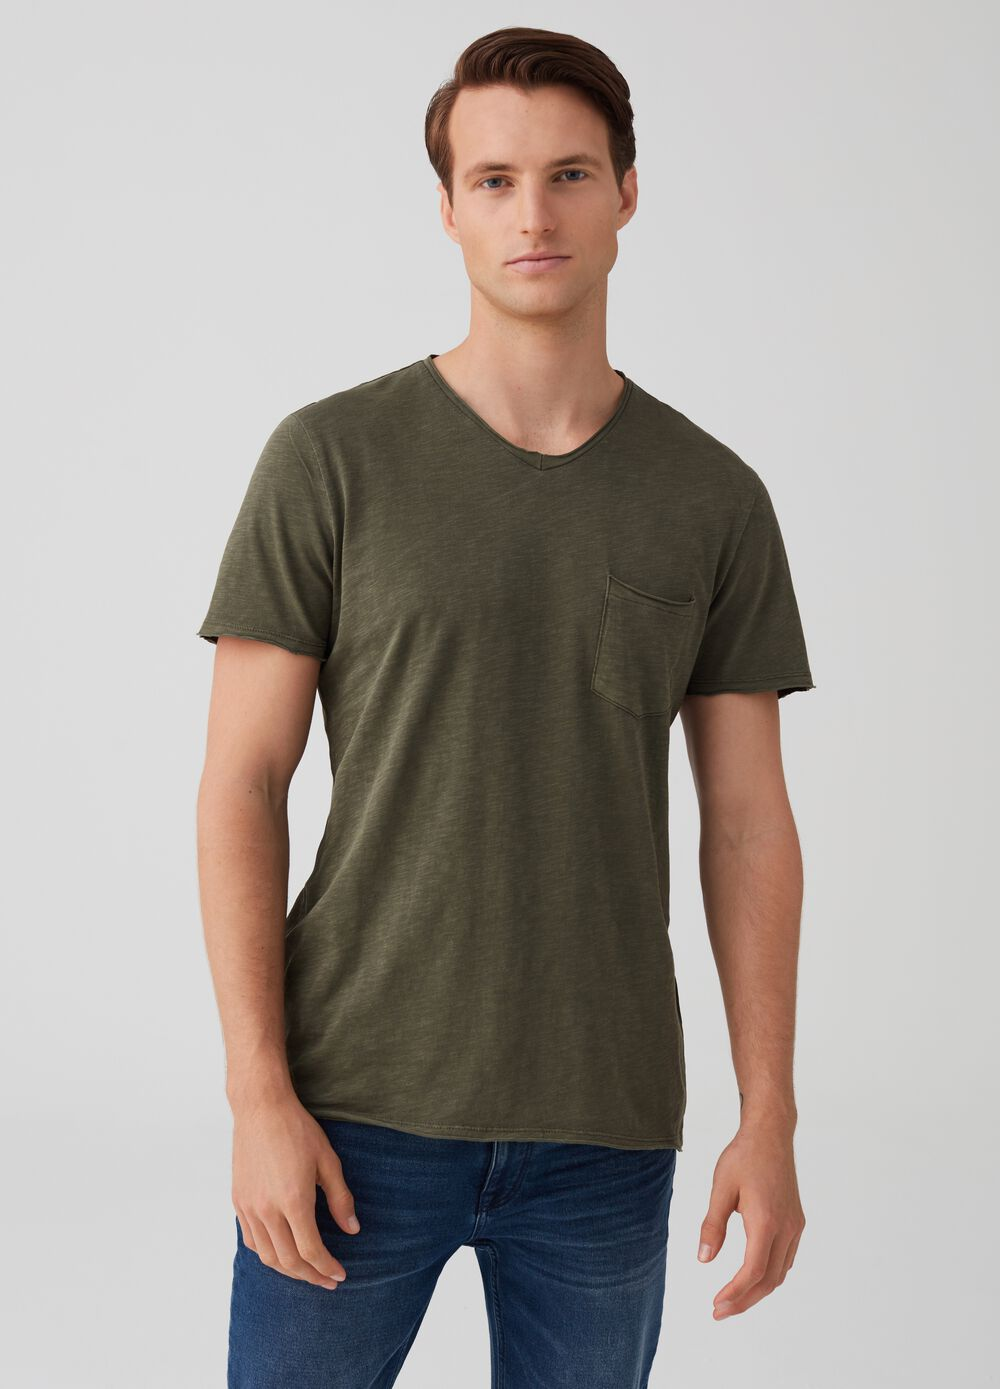 Cotton T-shirt with raw edges and V neck